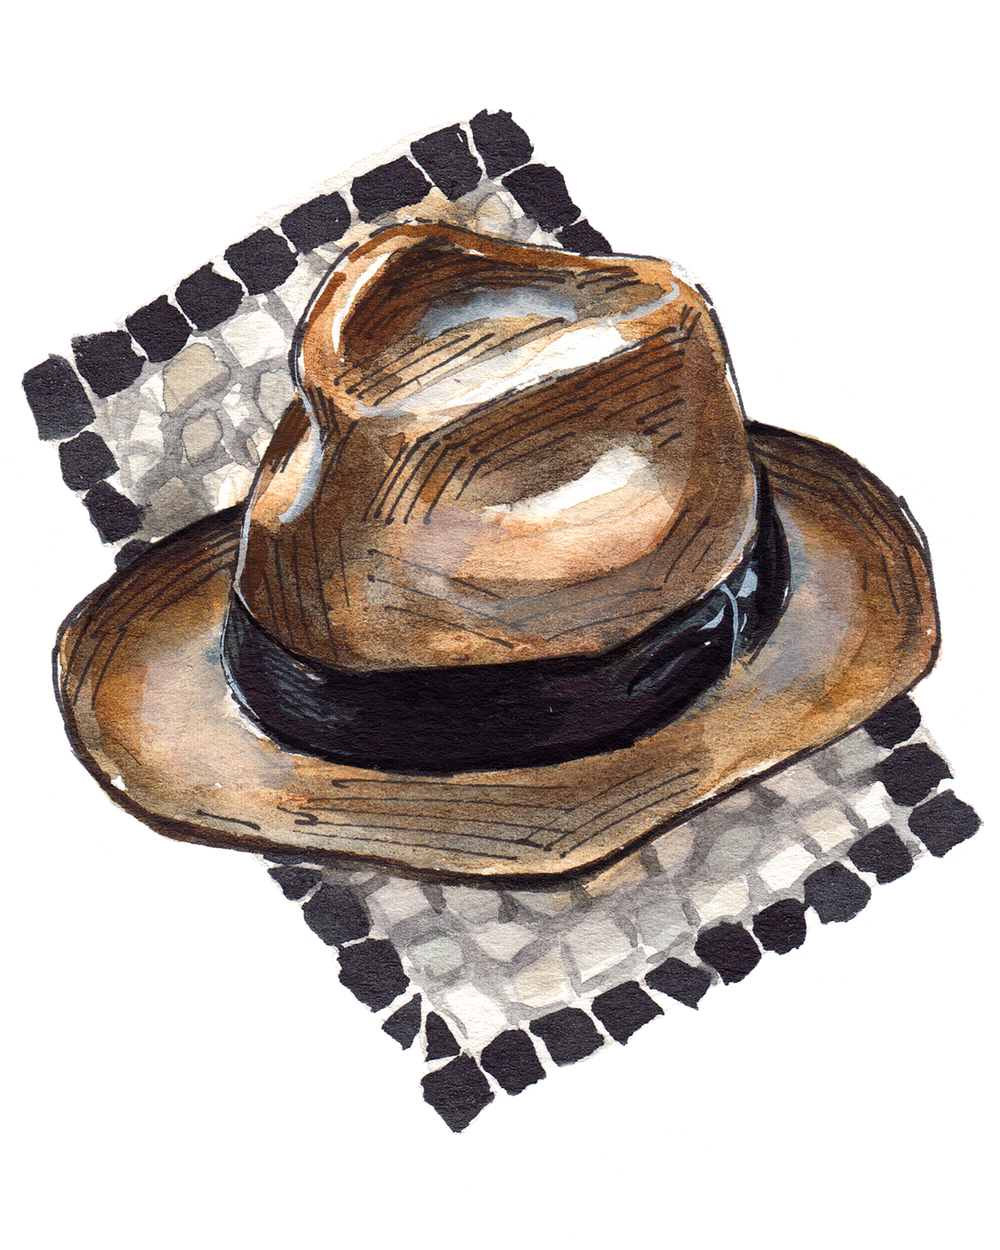 painting of a Borsalino, Italian fedora with a mosaic background